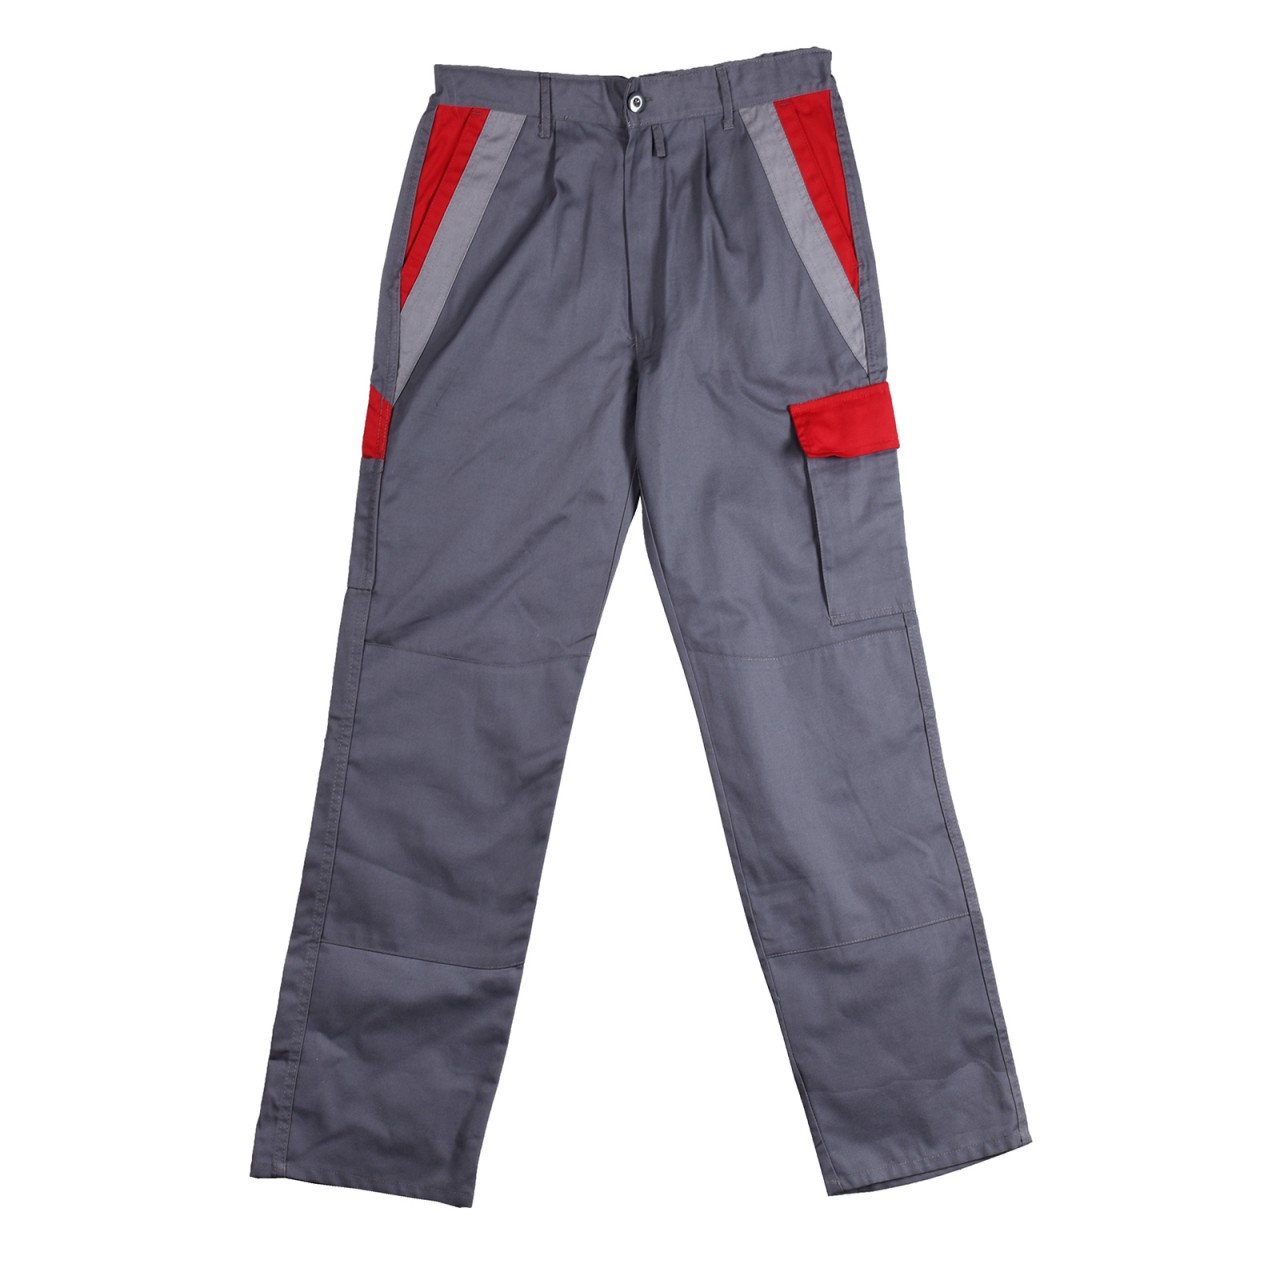 Handyman Trousers Contrast Design, Grey Red